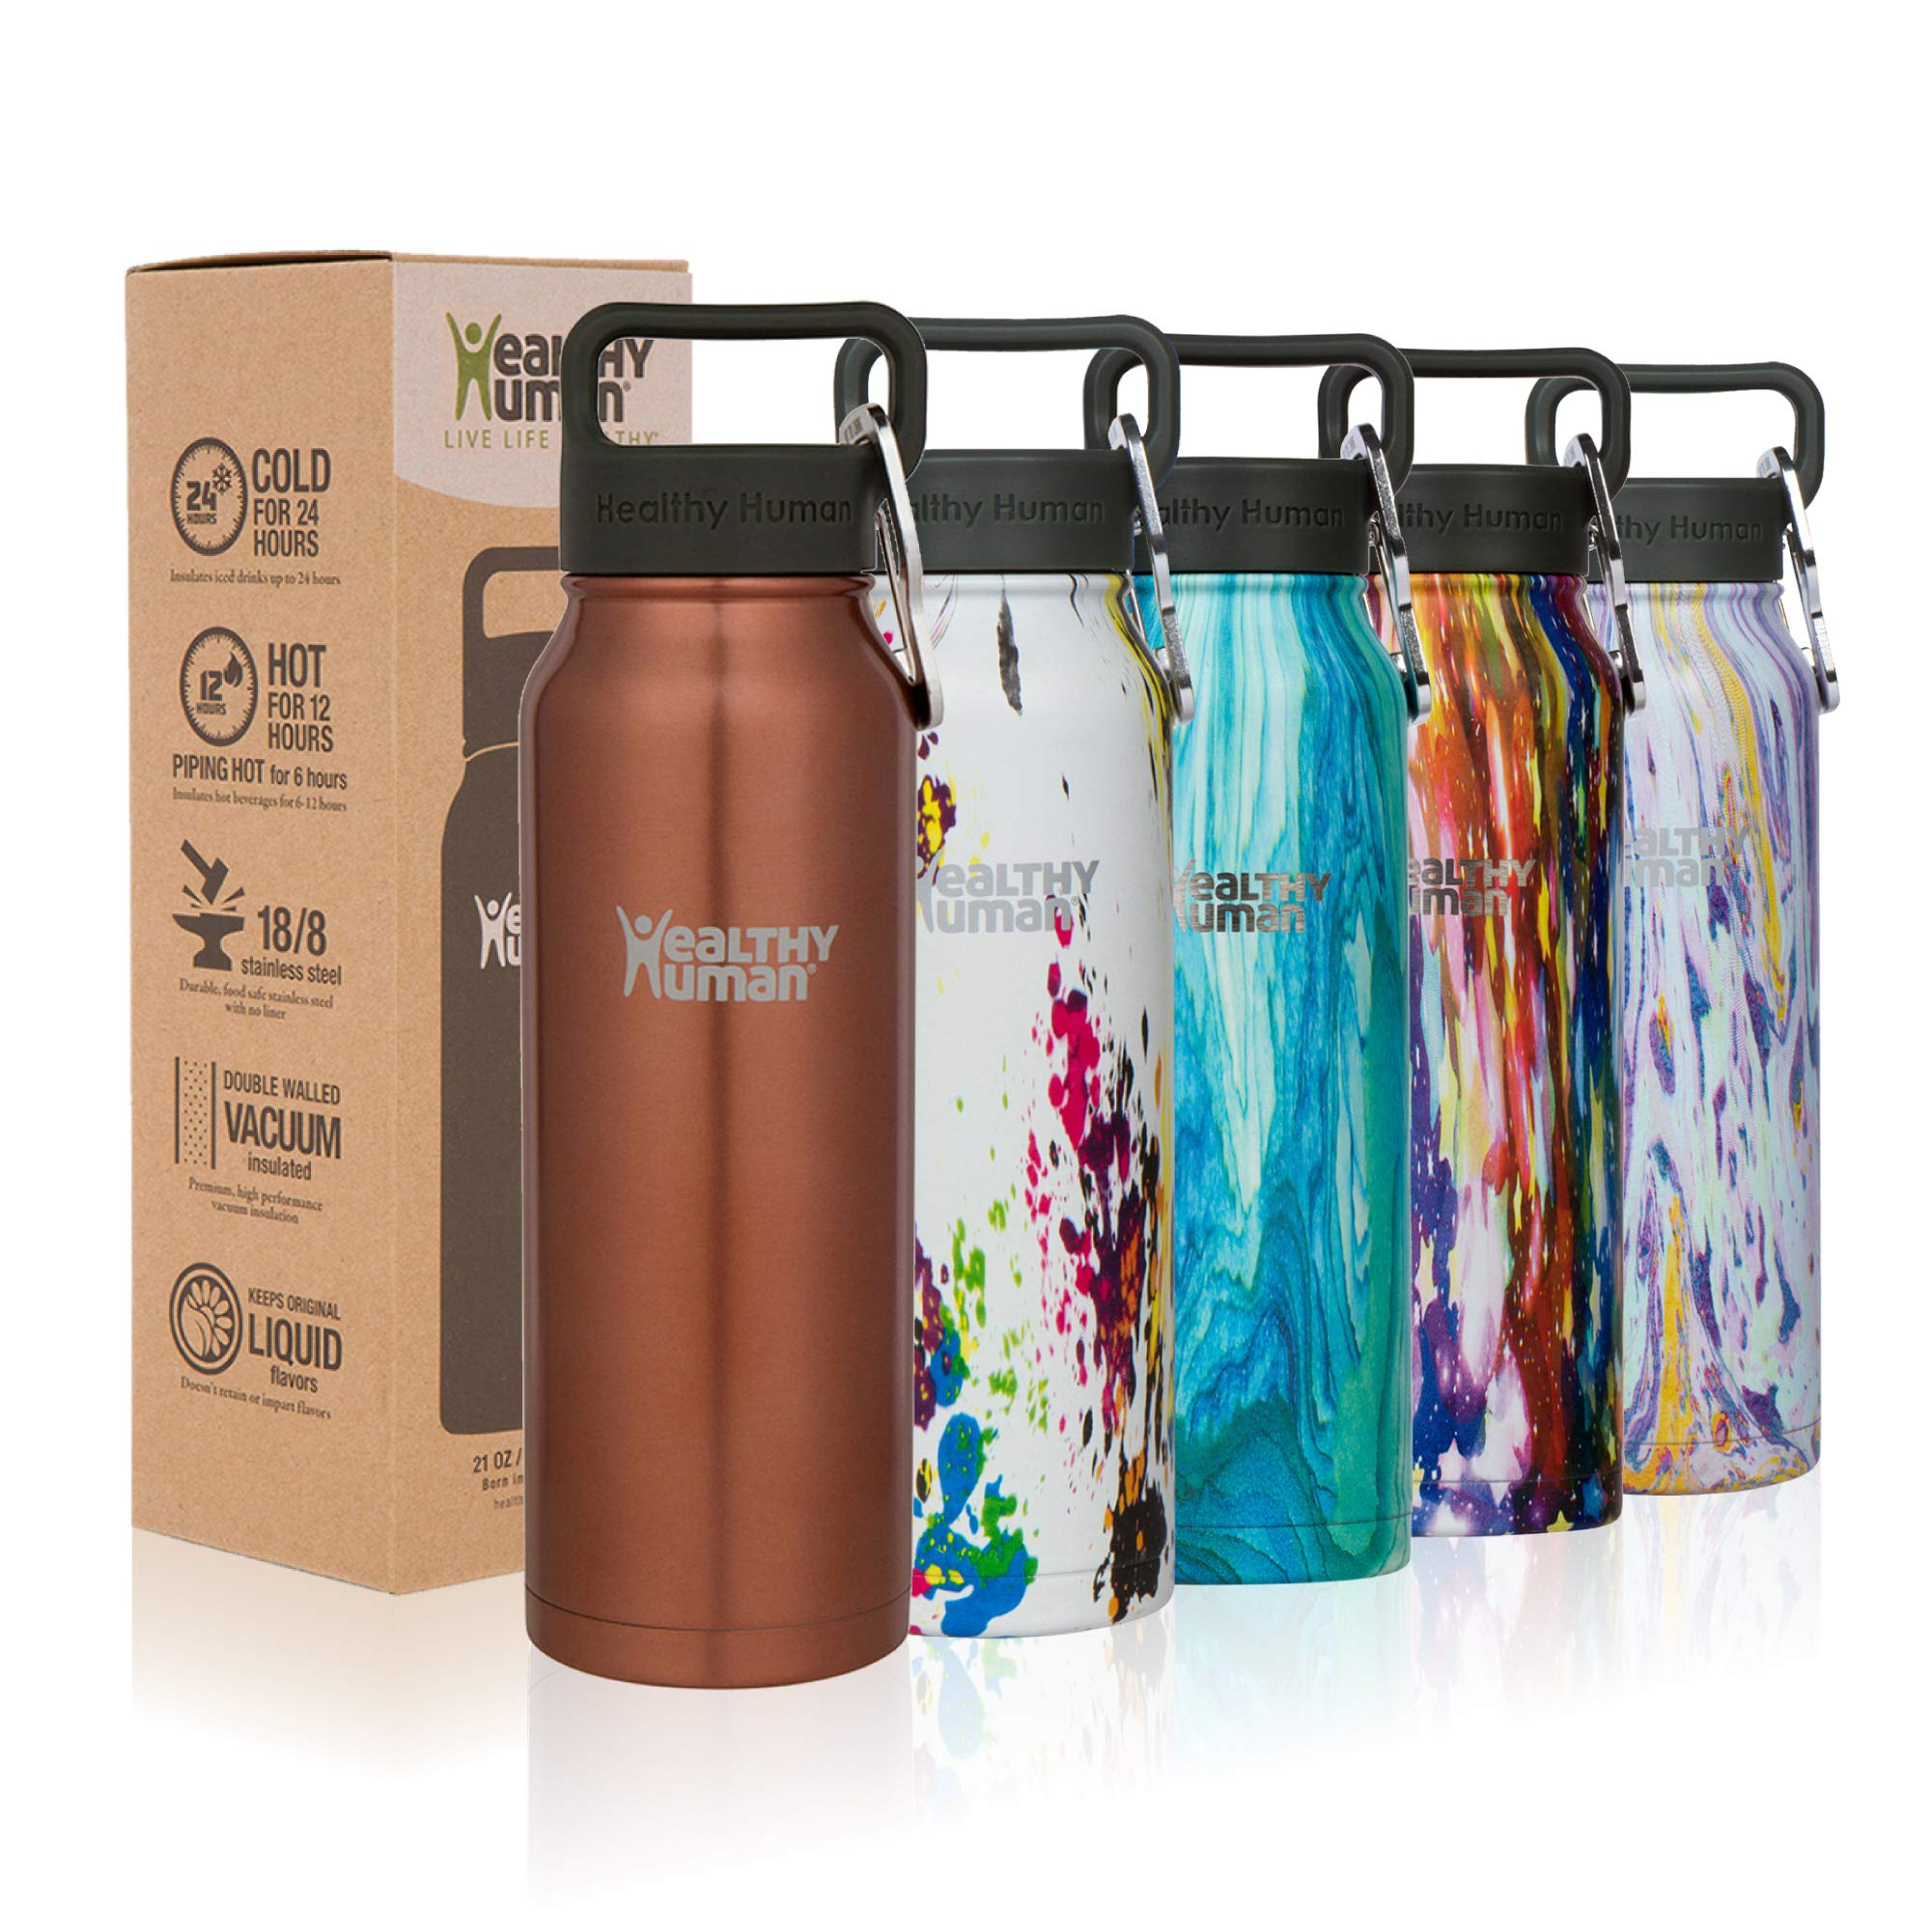 Healthy Human Designer Collection Insulated Stainless Steel Water Bottle Stein - Cold 12 Hours/Hot 6 Hours - Double Walled Vacuum Flask - 16 oz Sunset Gold